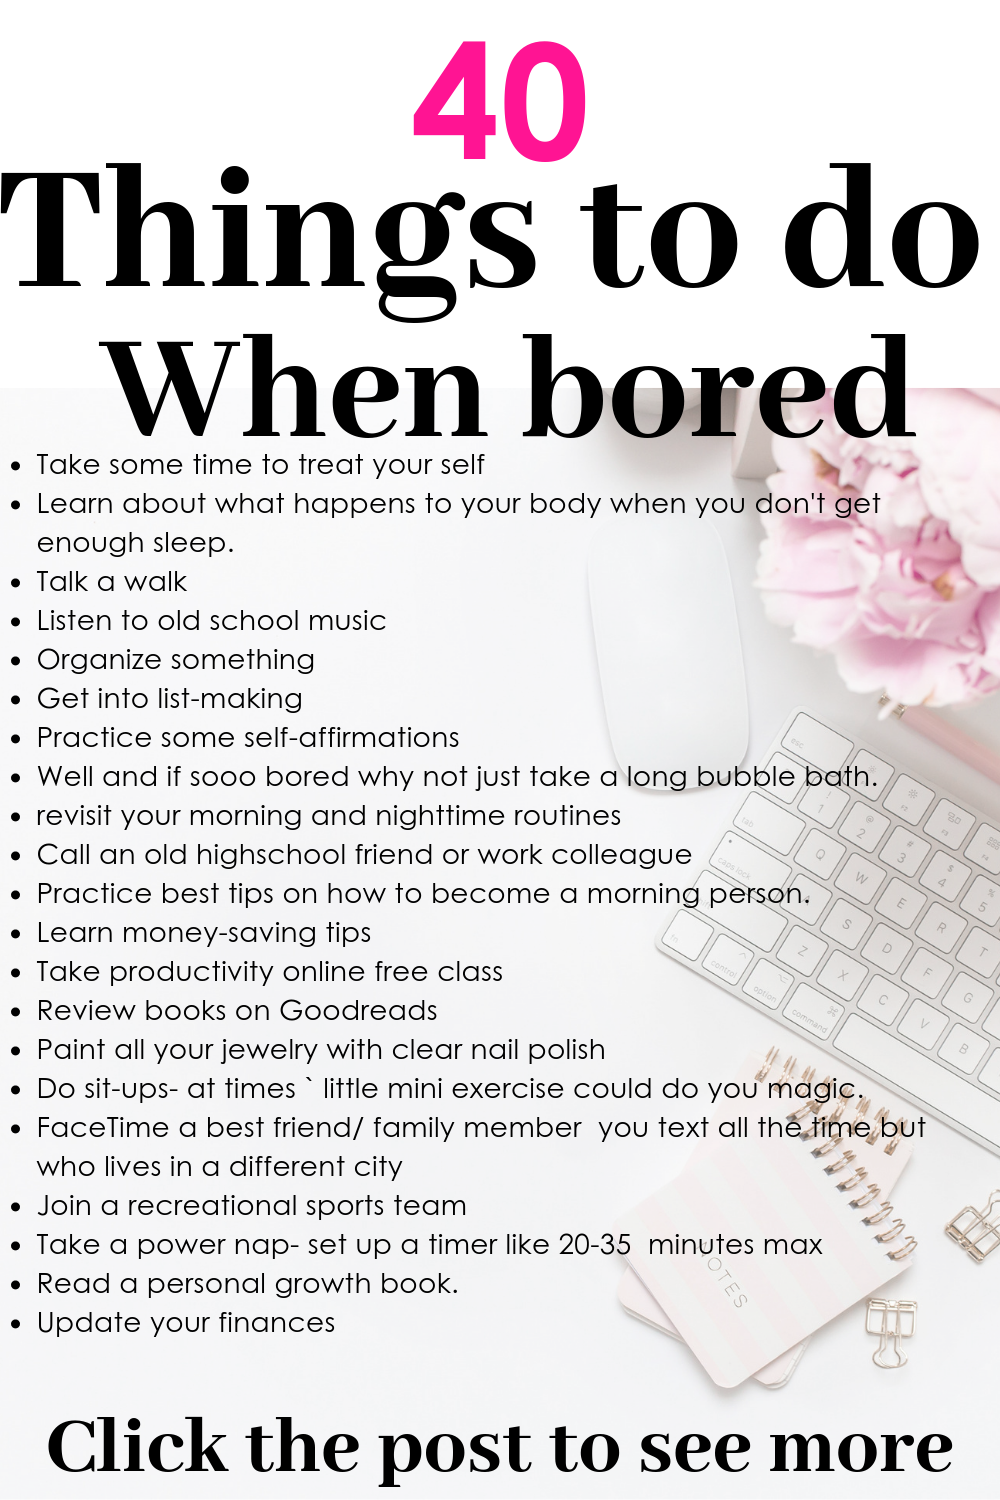 Things To Do When Bored At Home For Adults You Wonder What In 2020 Things To Do When Bored What To Do When Bored Things To Do At Home